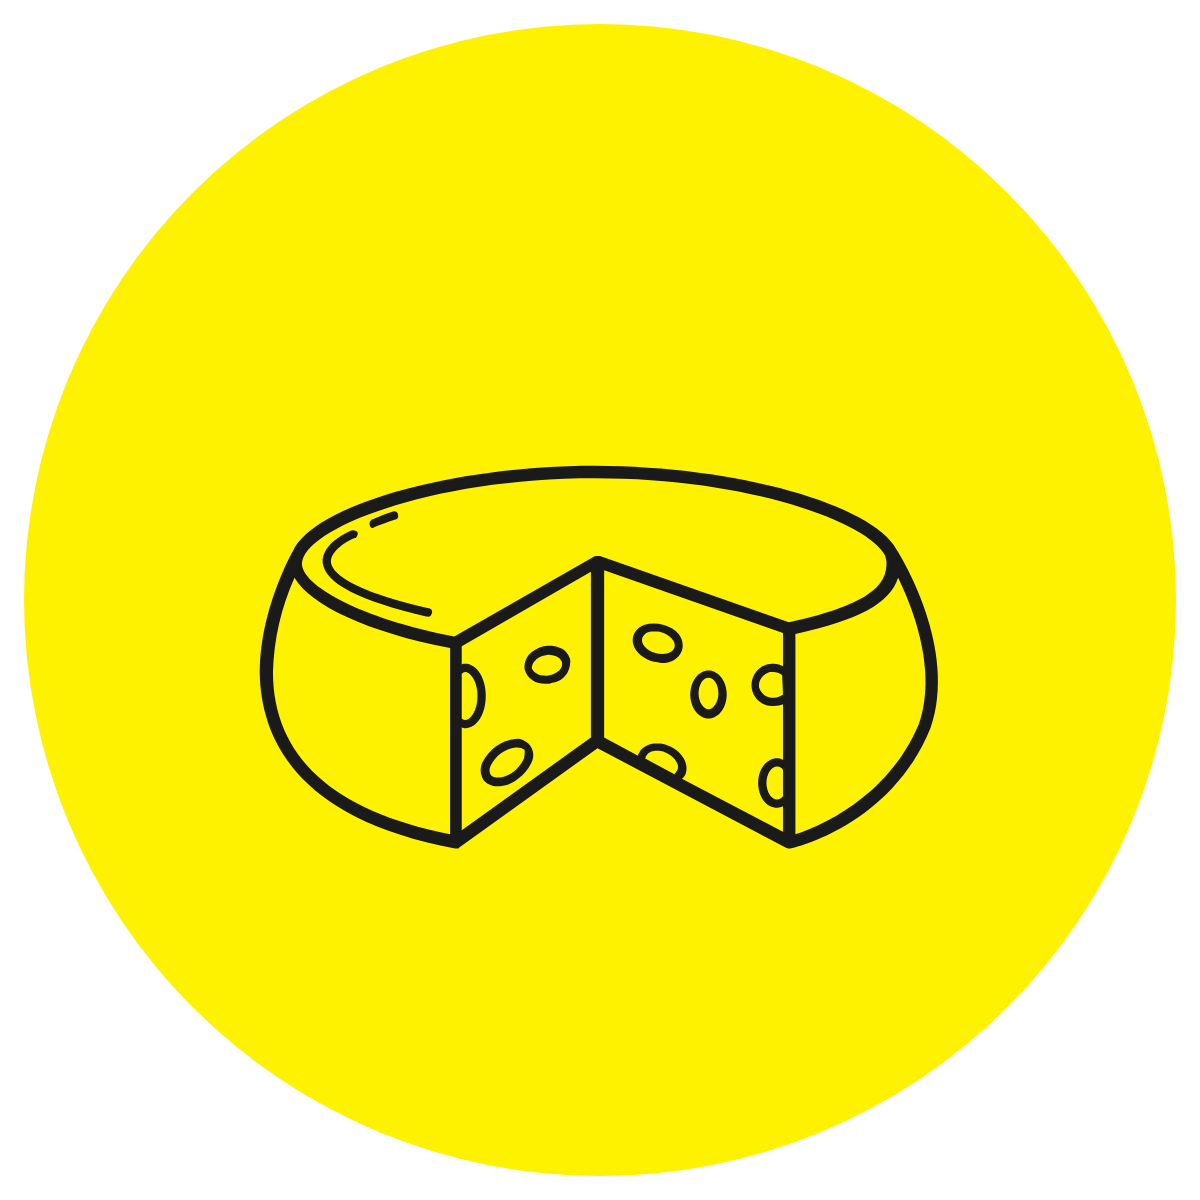 Line drawing of a block of cheese with a yellow background